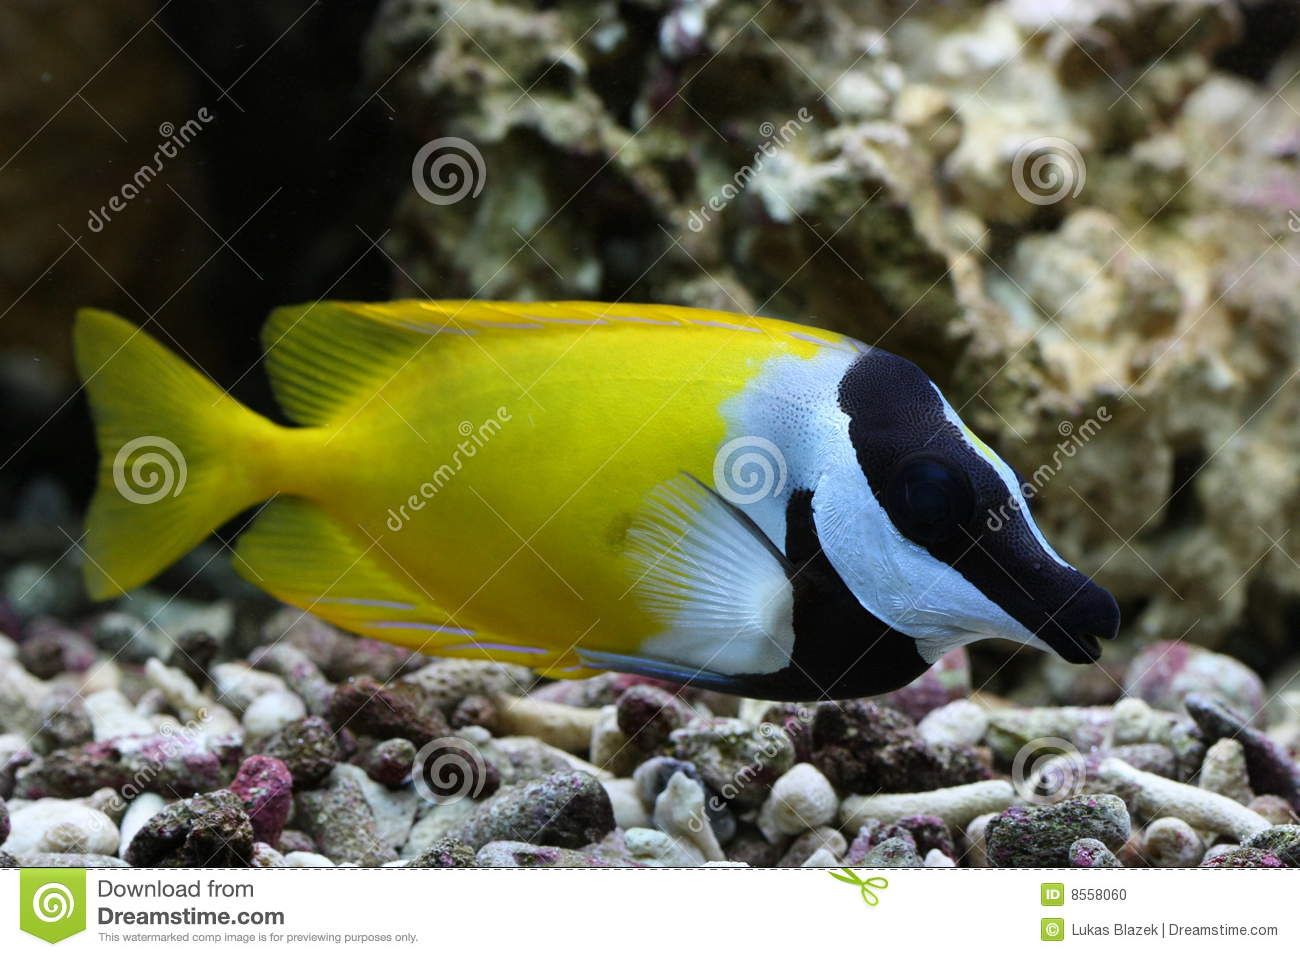 Foxface rabbitfish stock photo image 8558060 for Fox face fish